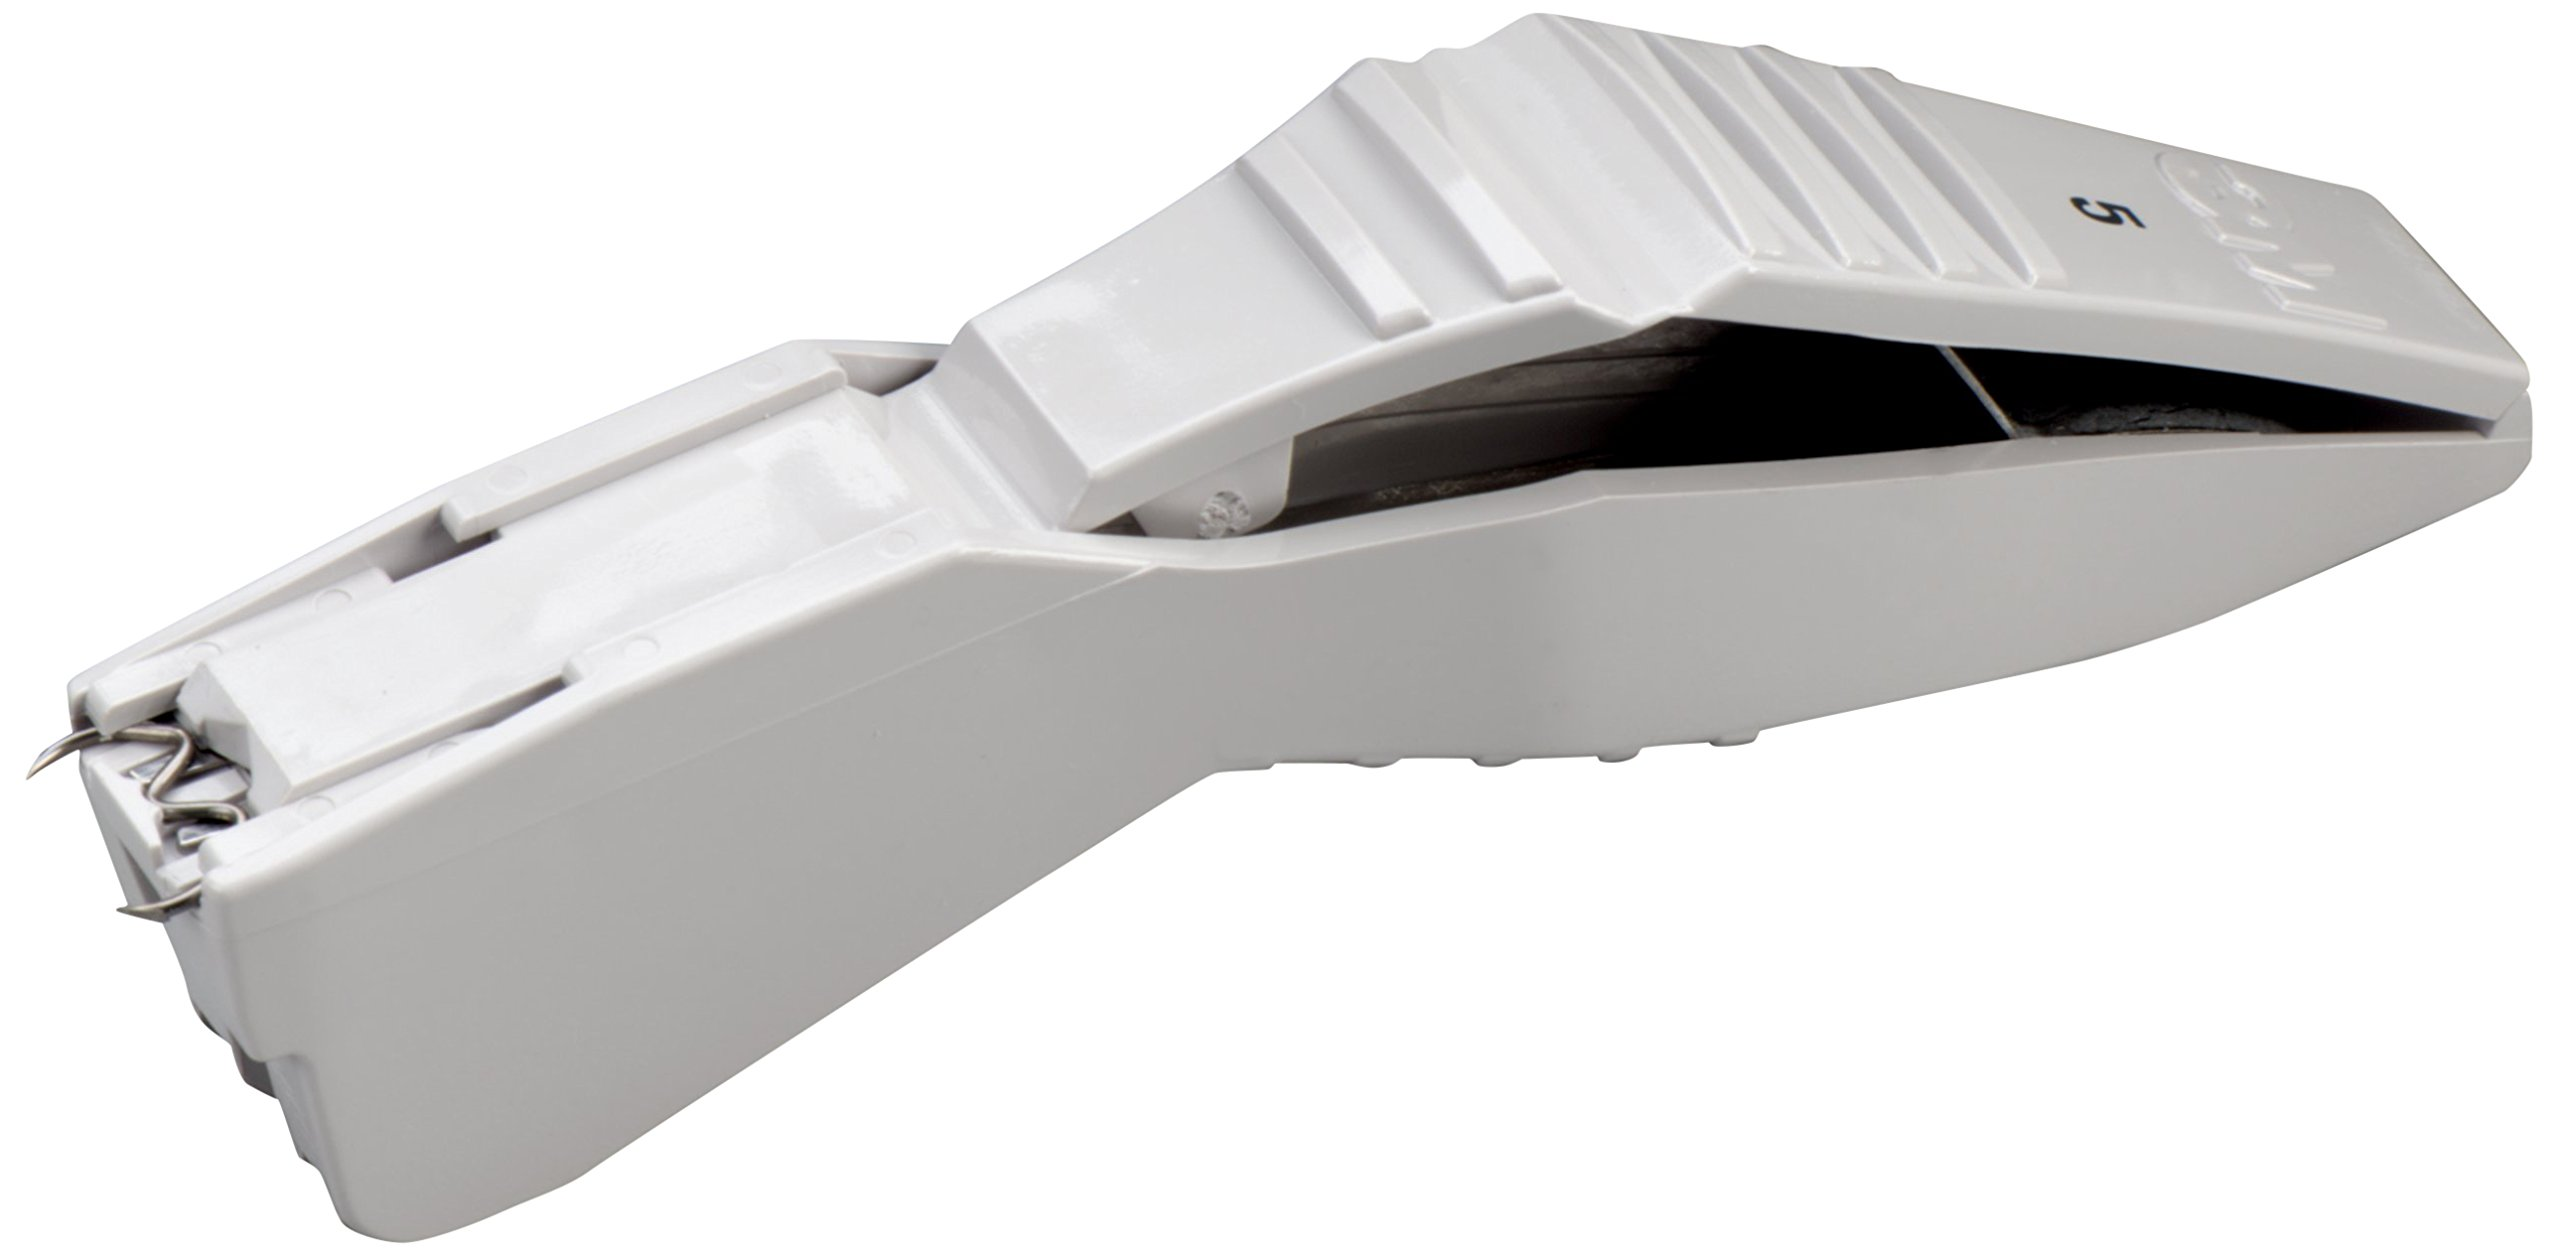 3M DS-25 Precise Multi-Shot DS Disposable Skin Stapler (Pack of 12) by 3M